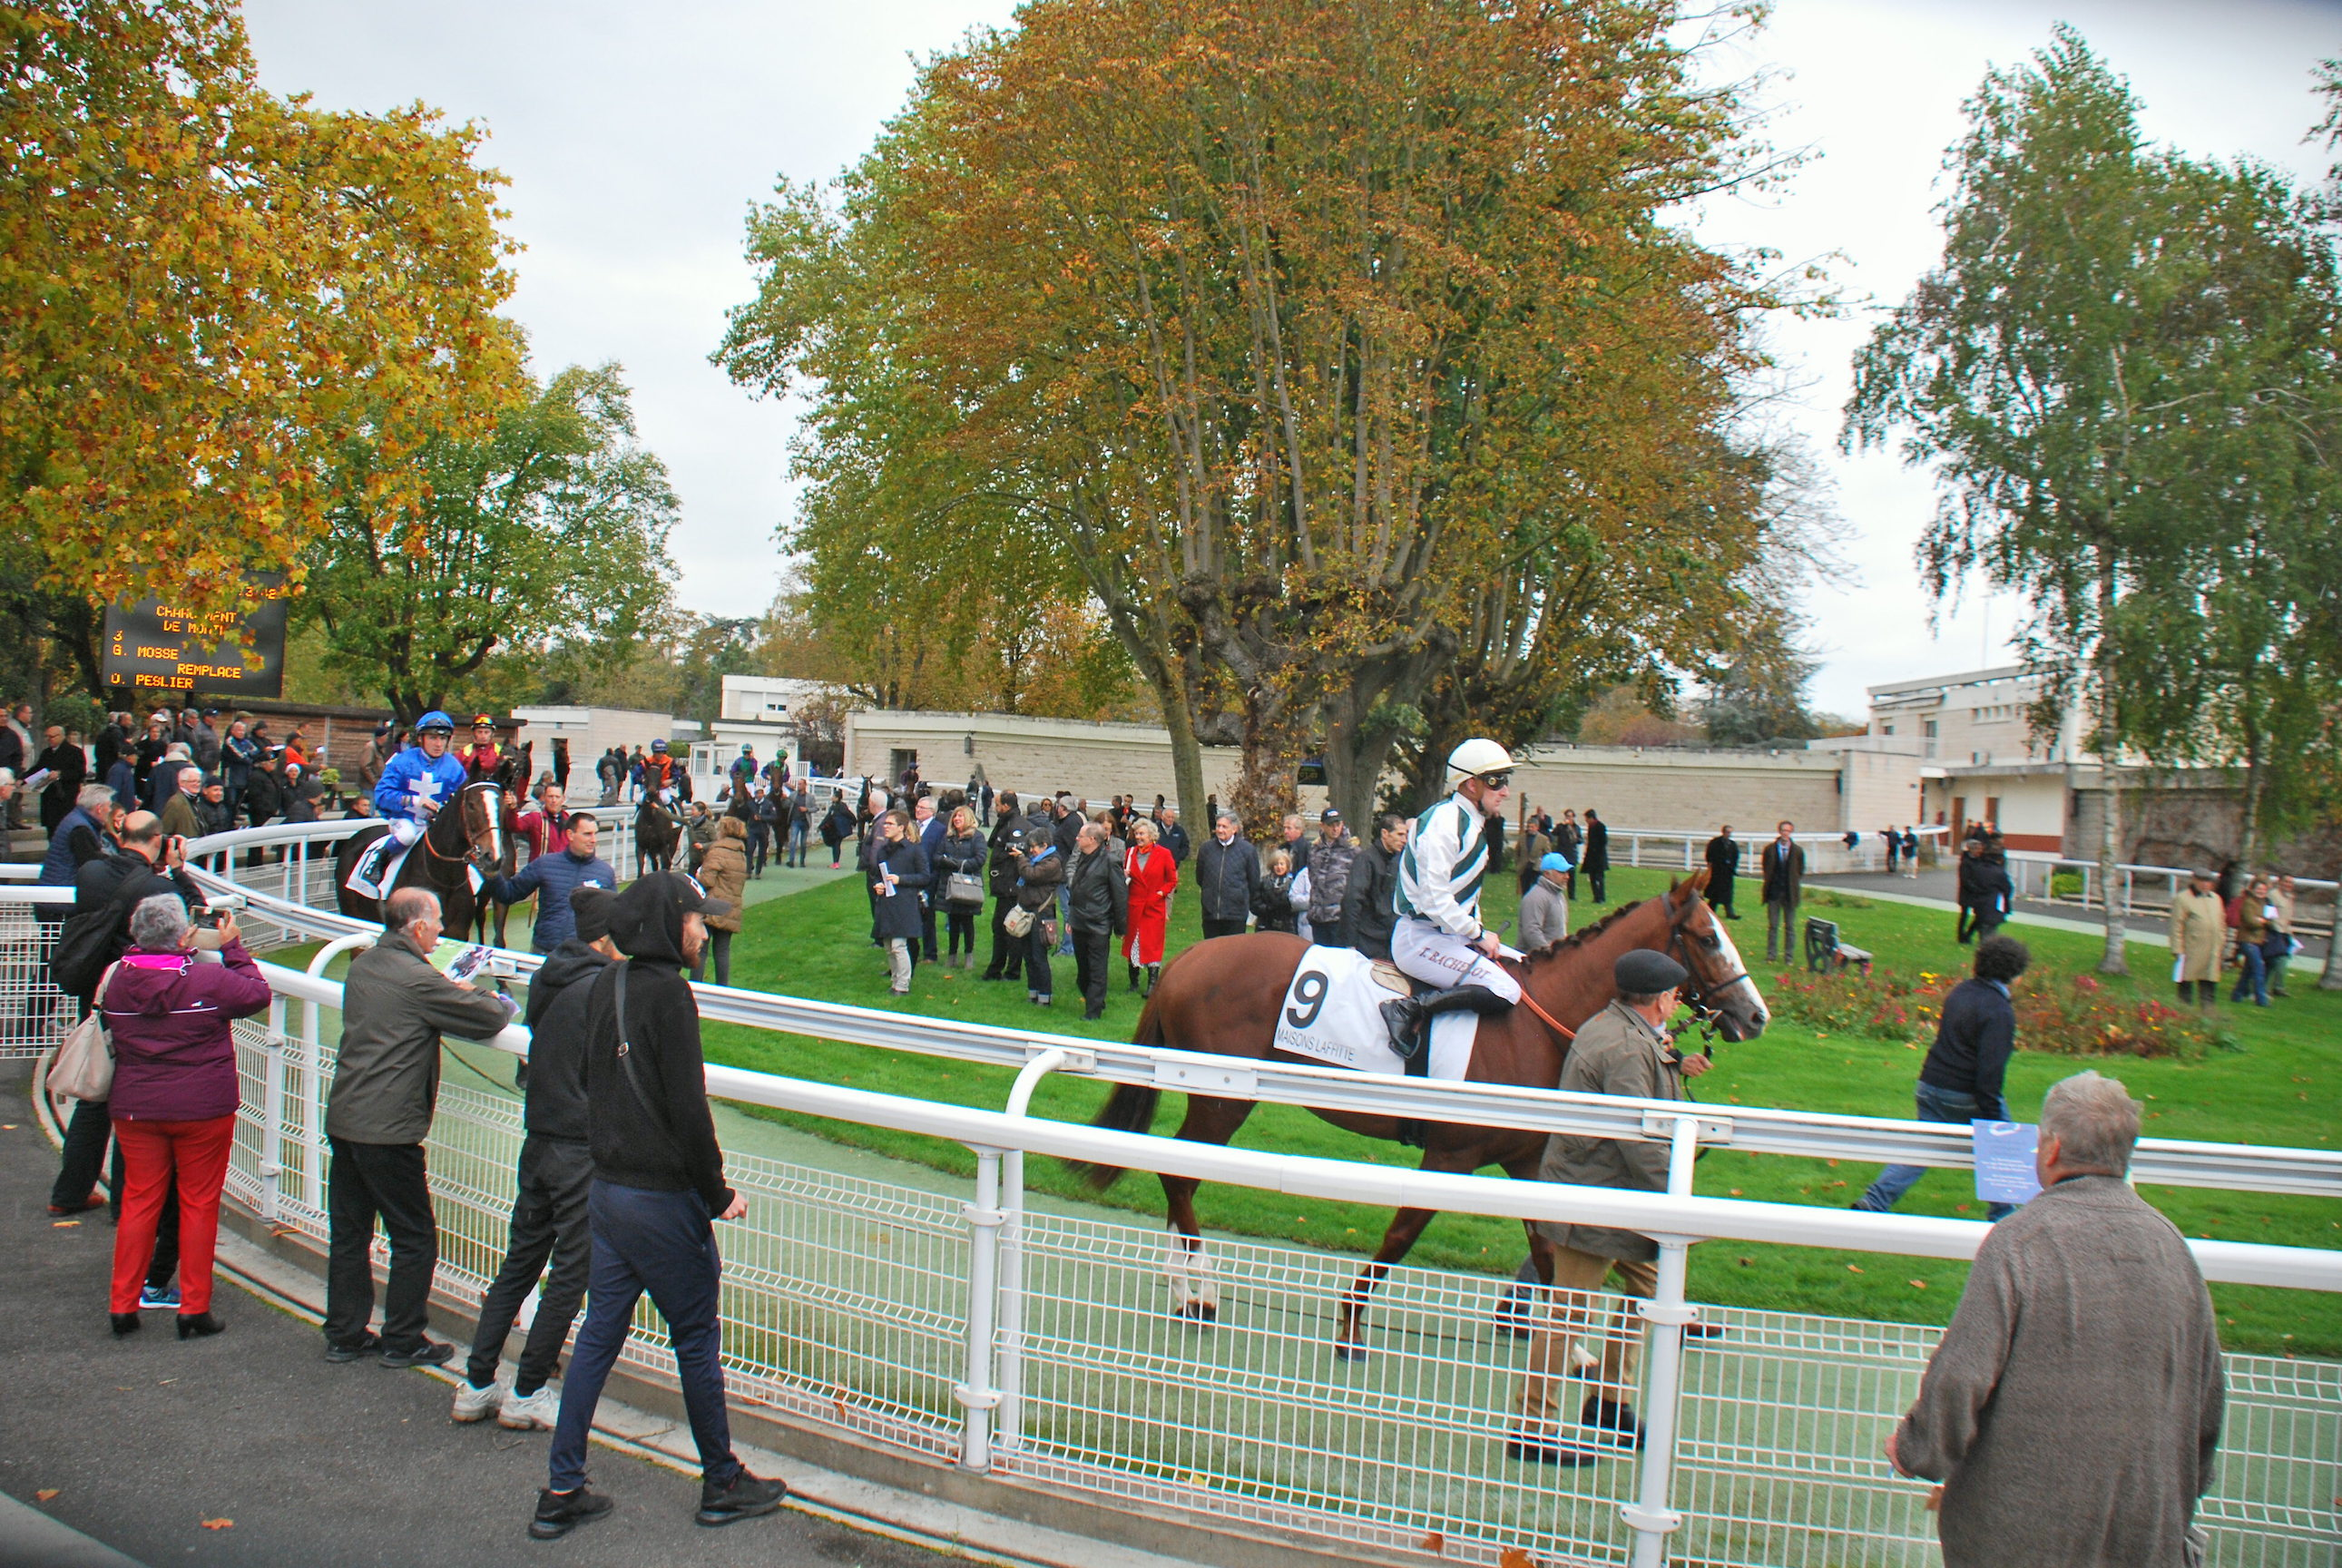 The parade ring at Maisons-Laffitte is one of the best features of the racecourse. Photo: John Gilmore